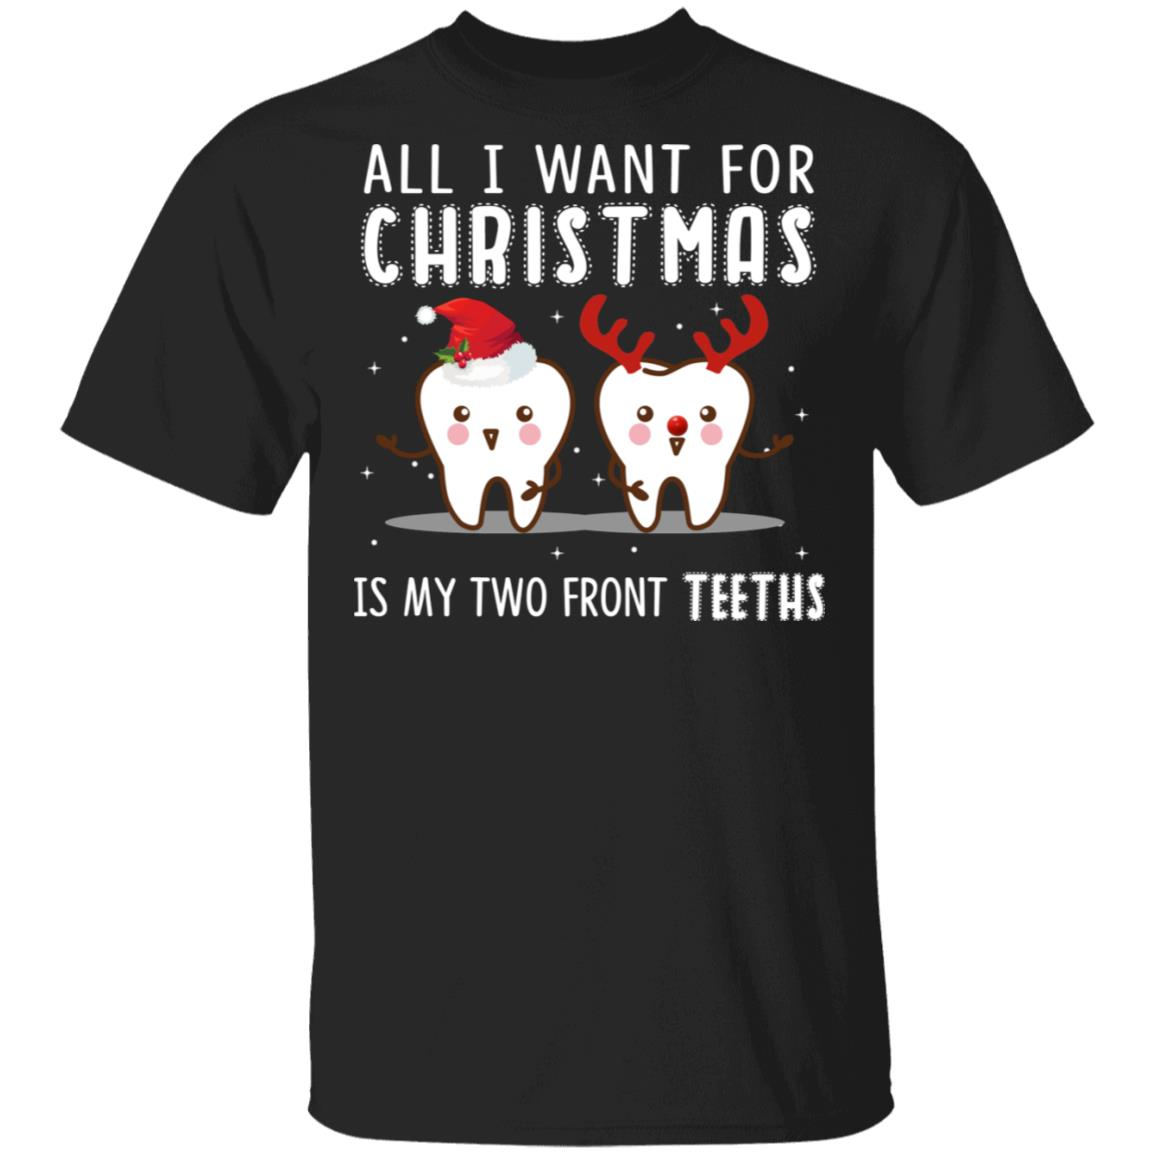 All I Want For Christmas is My Font Teeth Xmas Unisex Short Sleeve